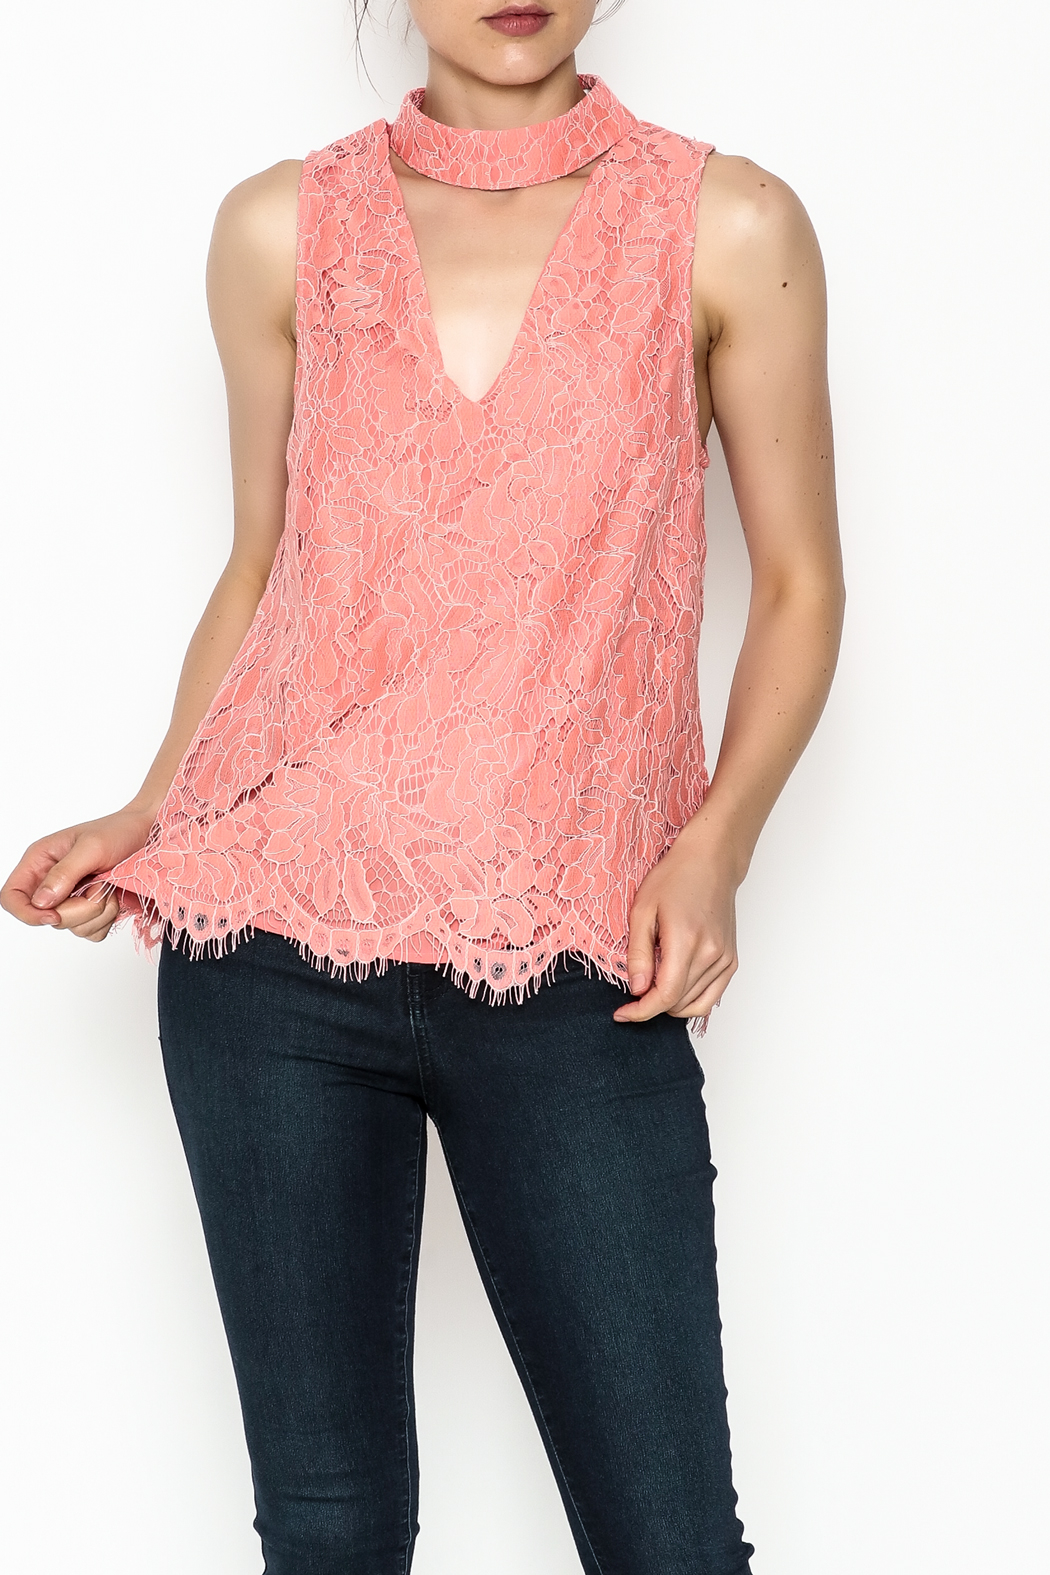 Do & Be Coral Lace Choker Top - Front Cropped Image